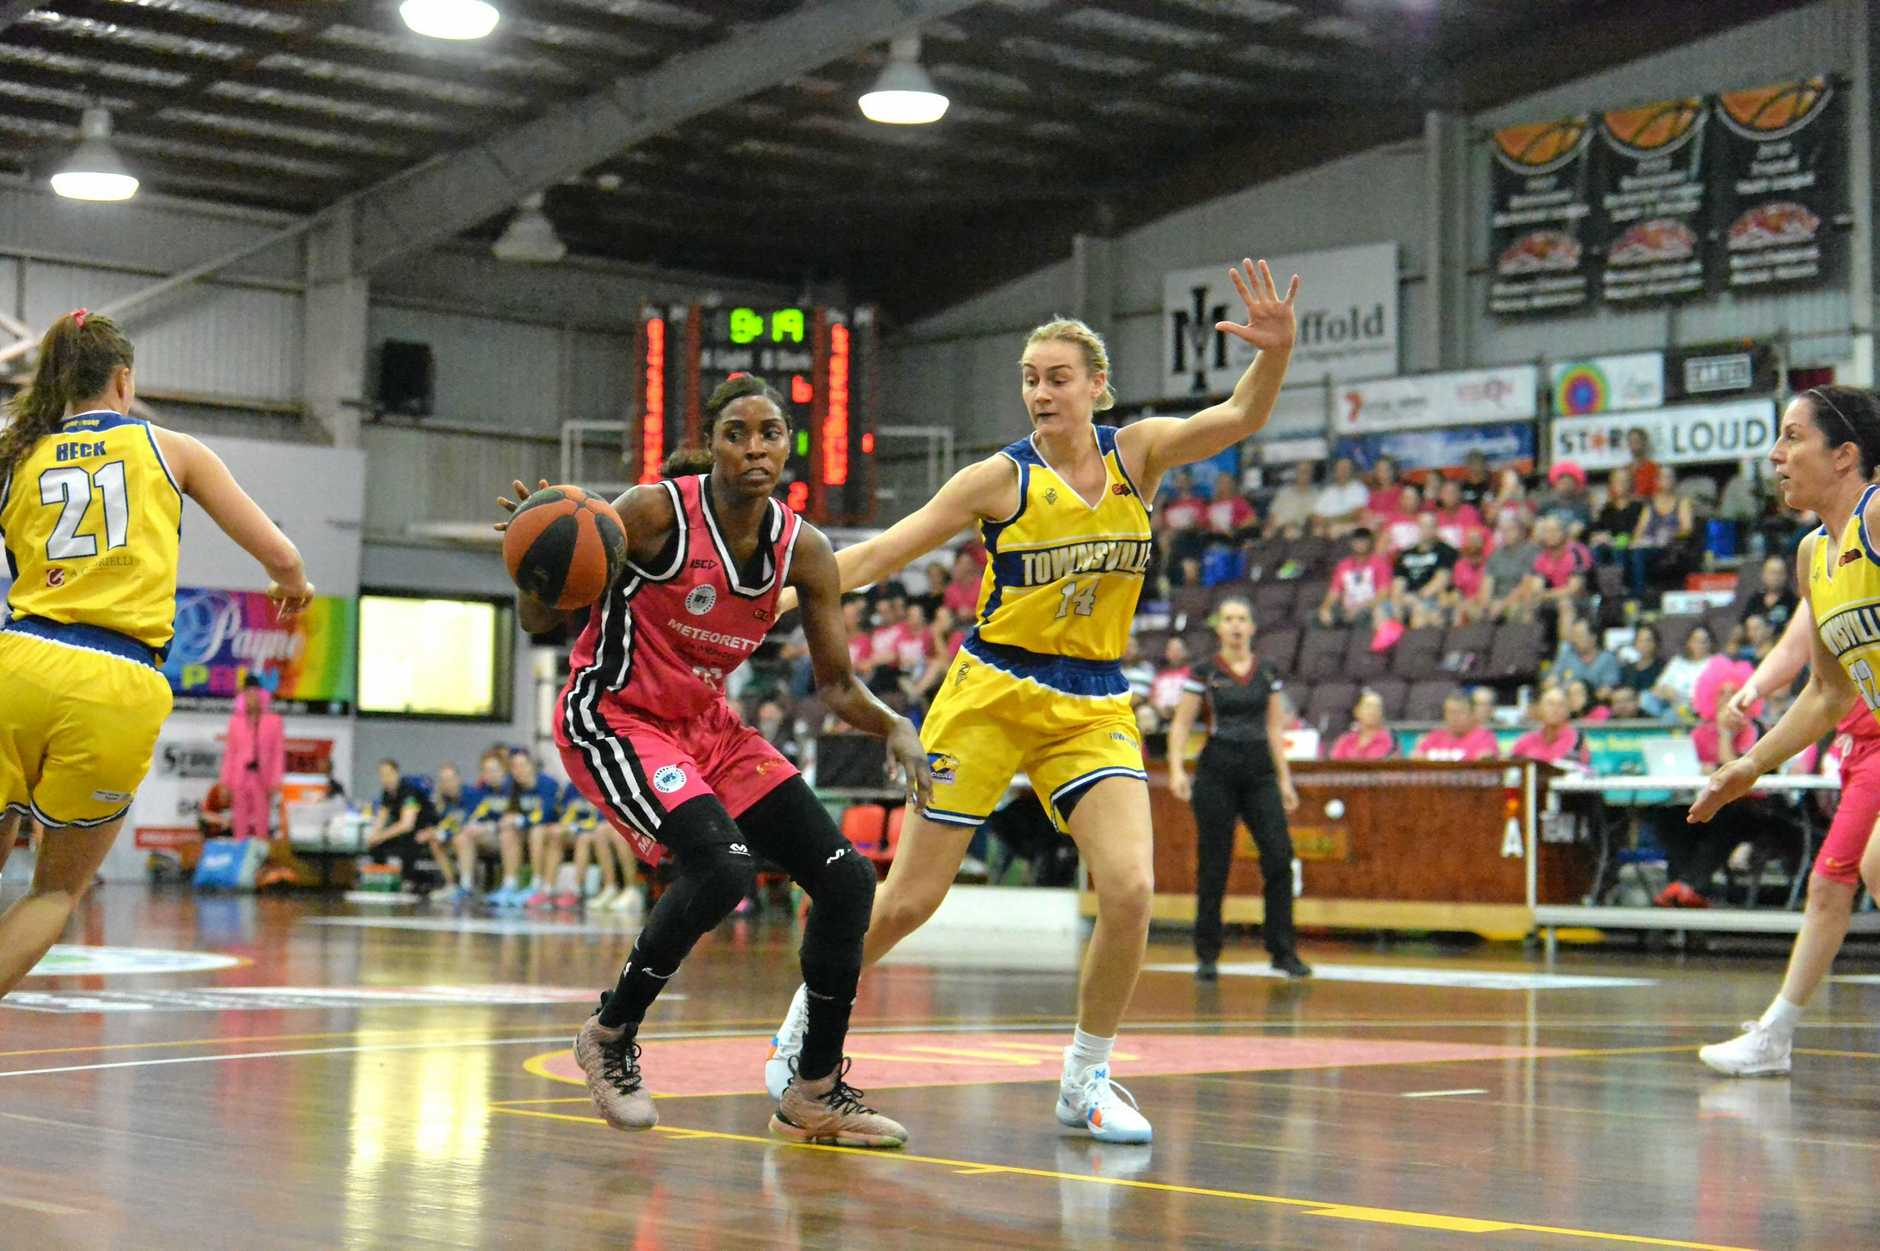 Mackay Meteorettes' Ruvanna Campbell on the drive against Townsville in round 11 of the QBL at the Crater, Mackay on Saturday, July 7, 2018.